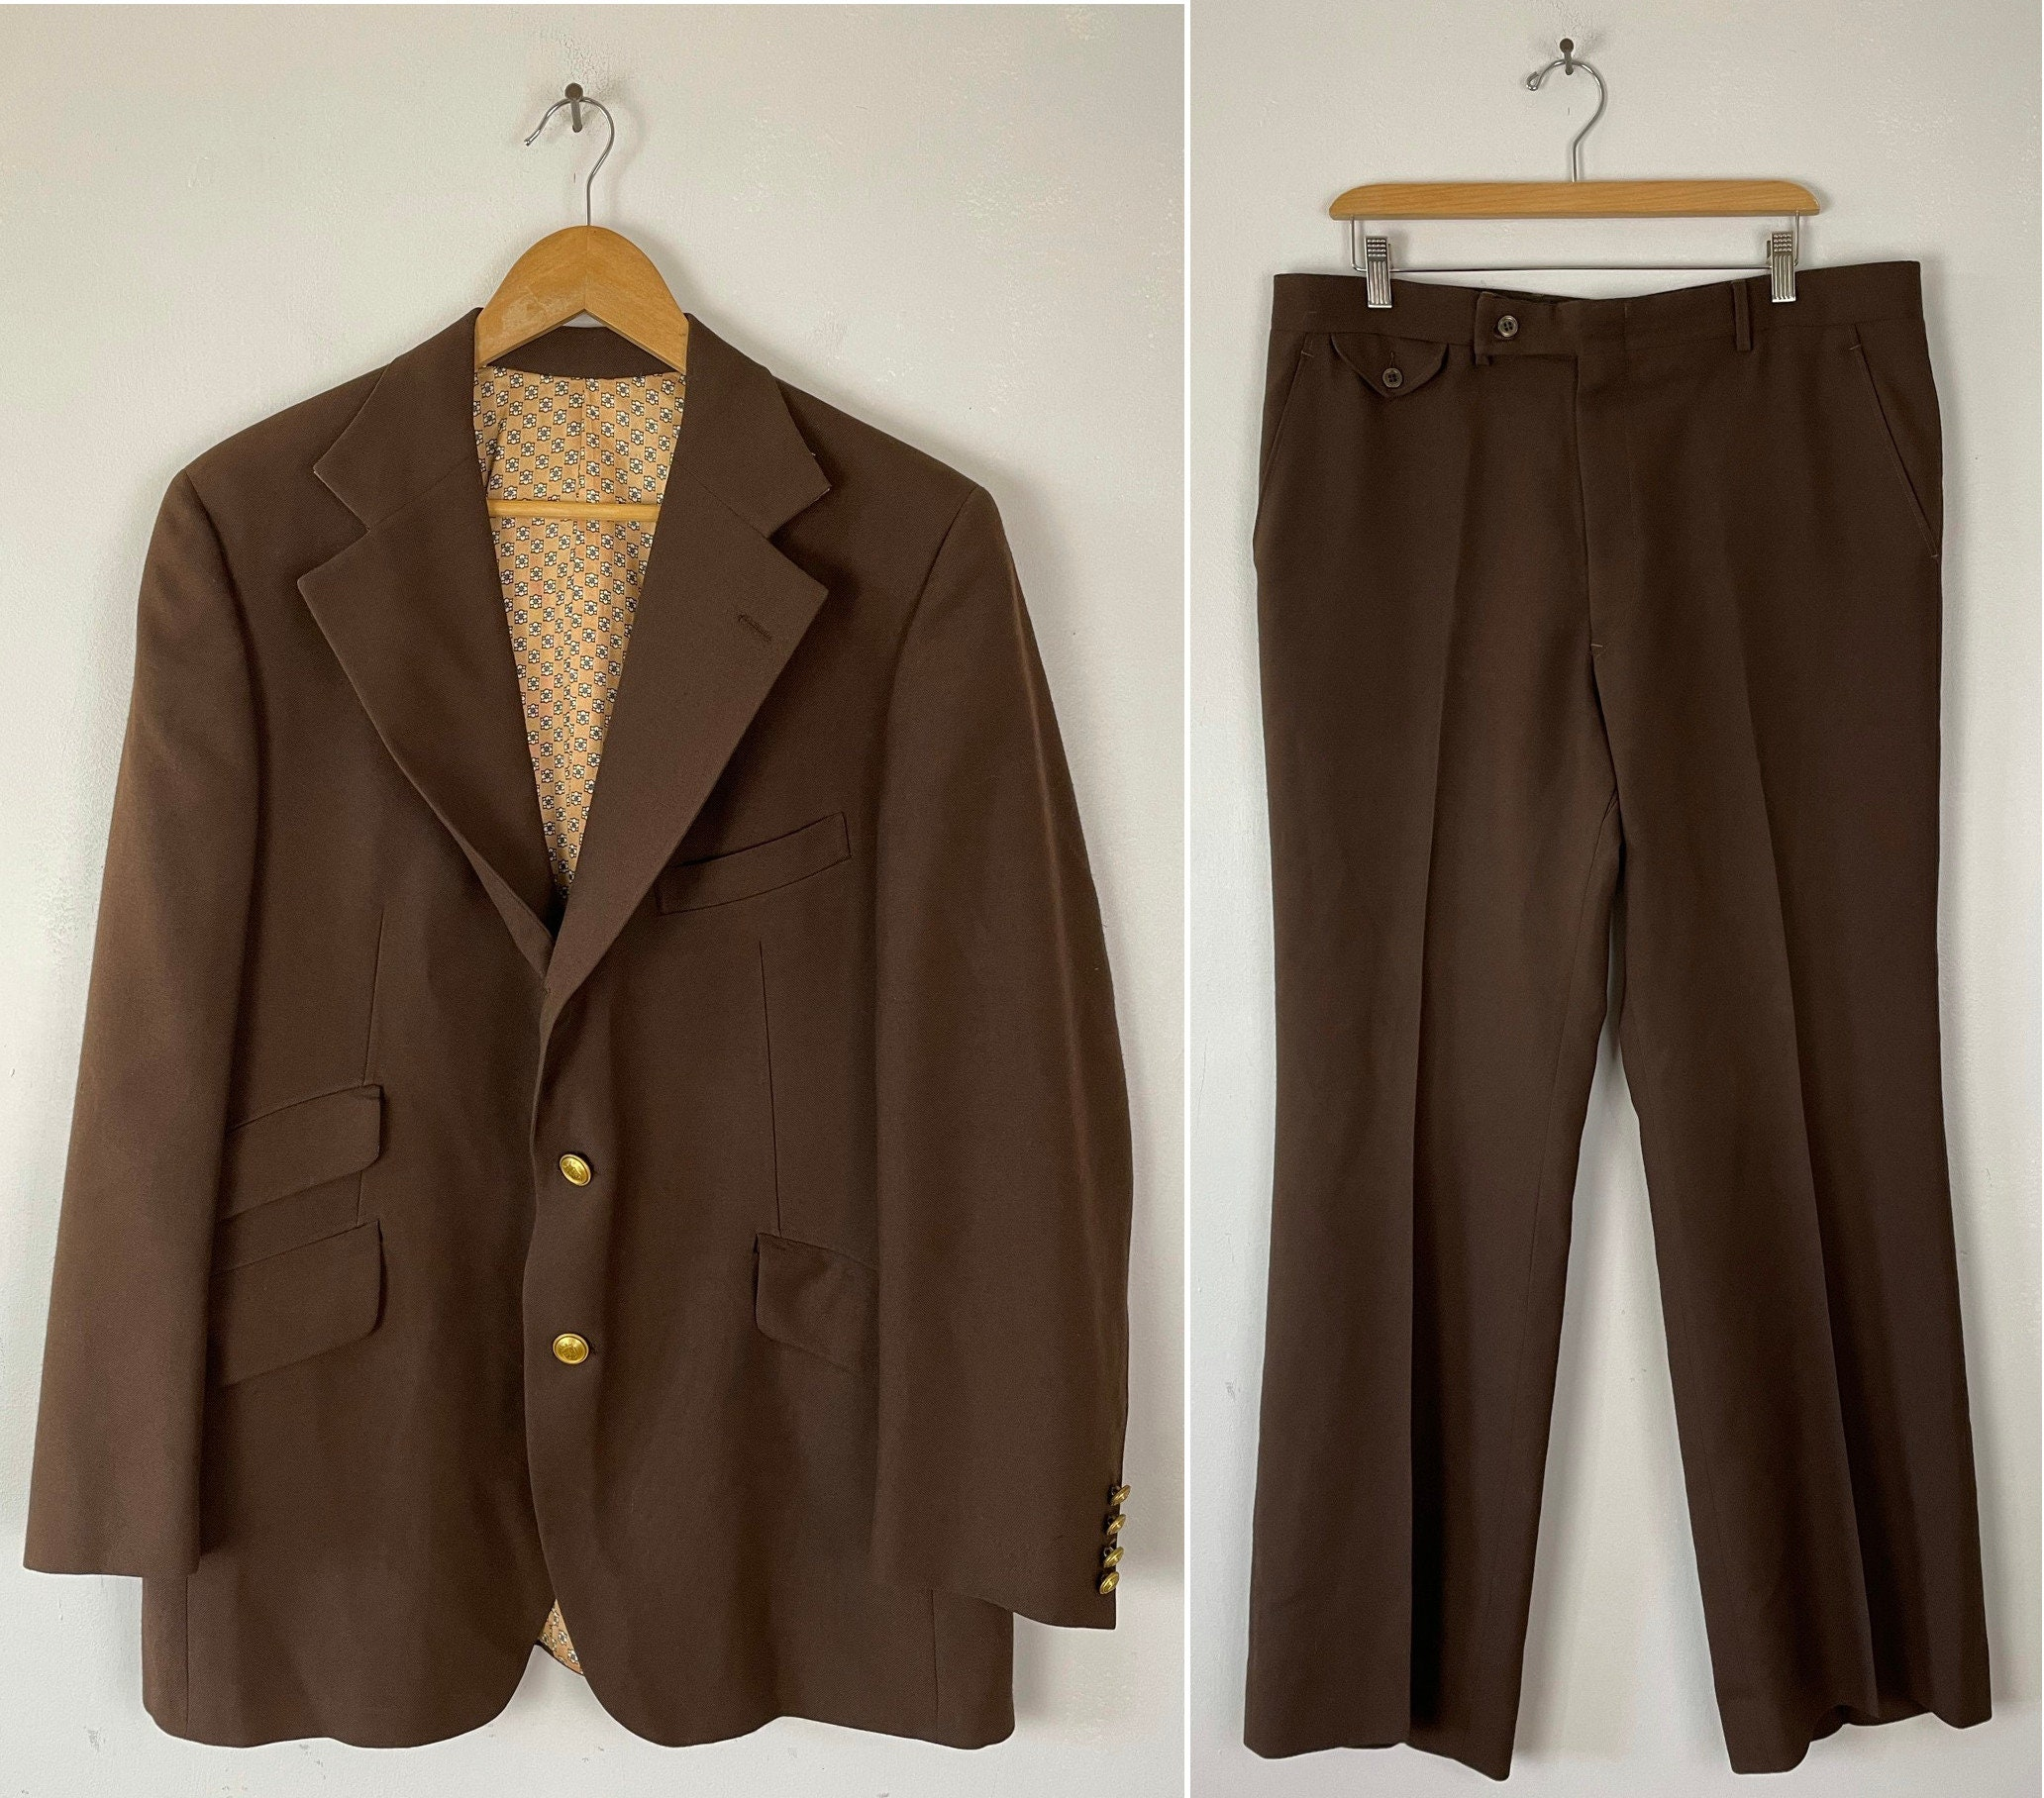 1960s – 70s Men's Ties | Skinny Ties, Slim Ties 60S Dark Brown Two Piece Suit With Gold Buttons Mens Size 44  36W, Vintage Classy Suit, 1960S Formal Event Wedding $50.00 AT vintagedancer.com